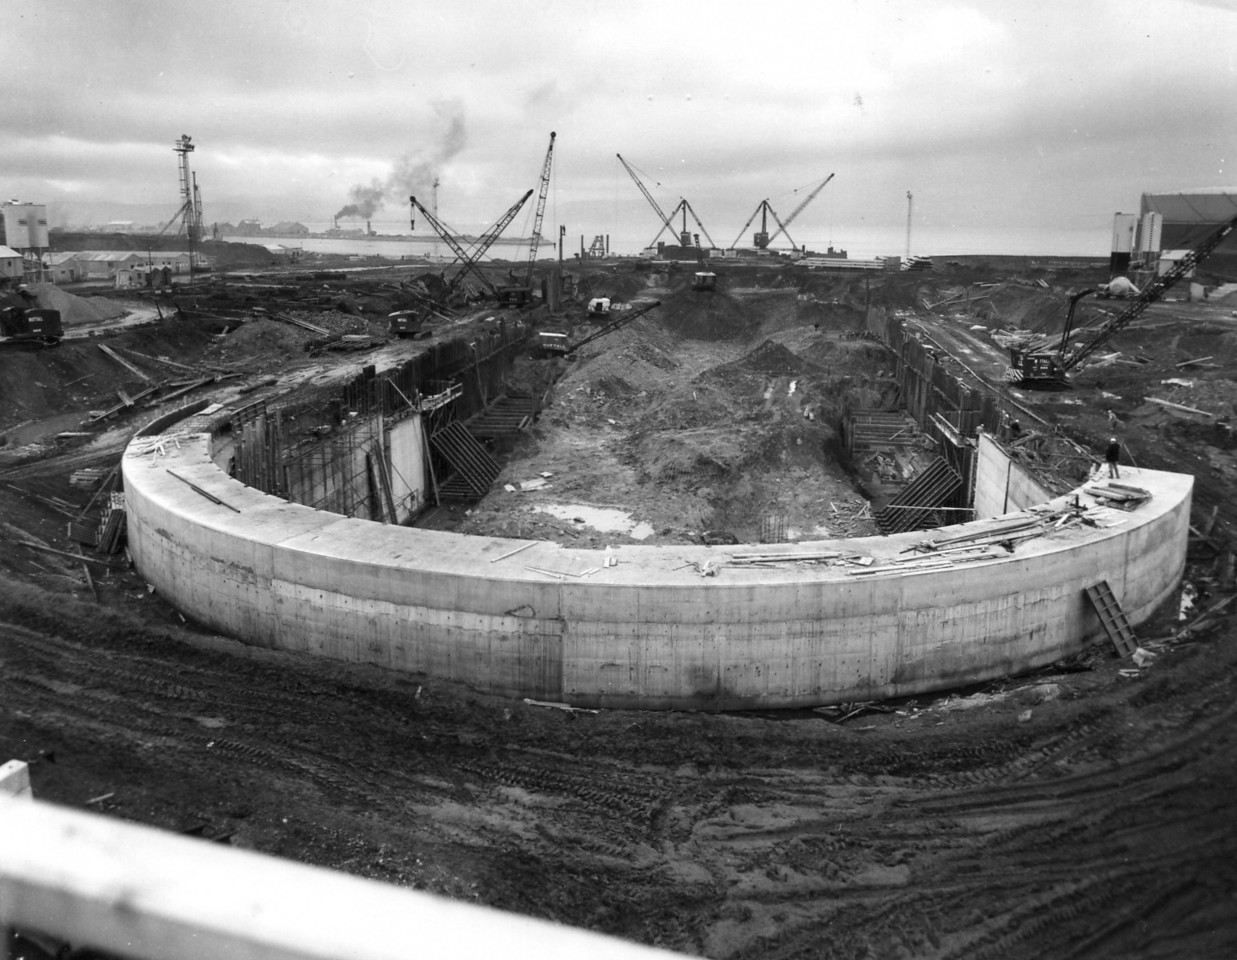 D053	General view of dock site from head of dock   27/11/1962